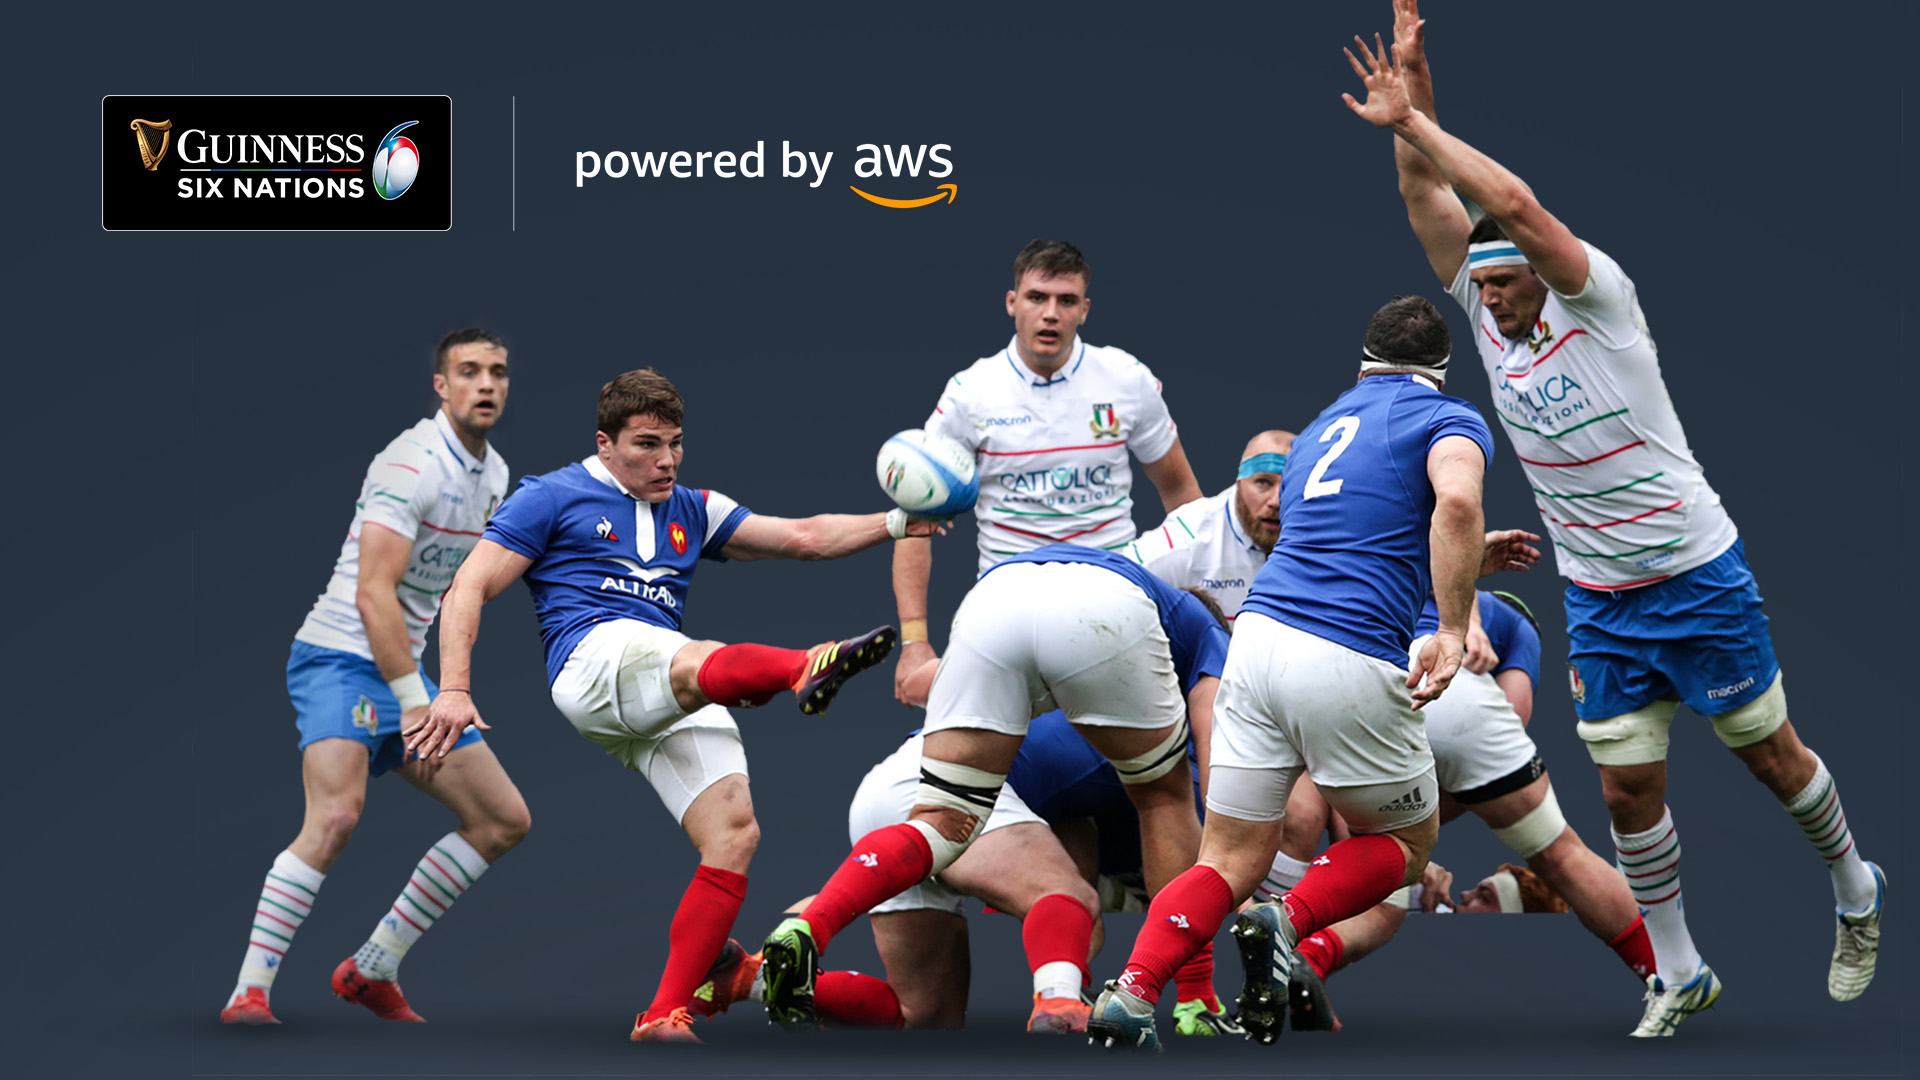 AWS_Sports_Header_Mobile_6N01